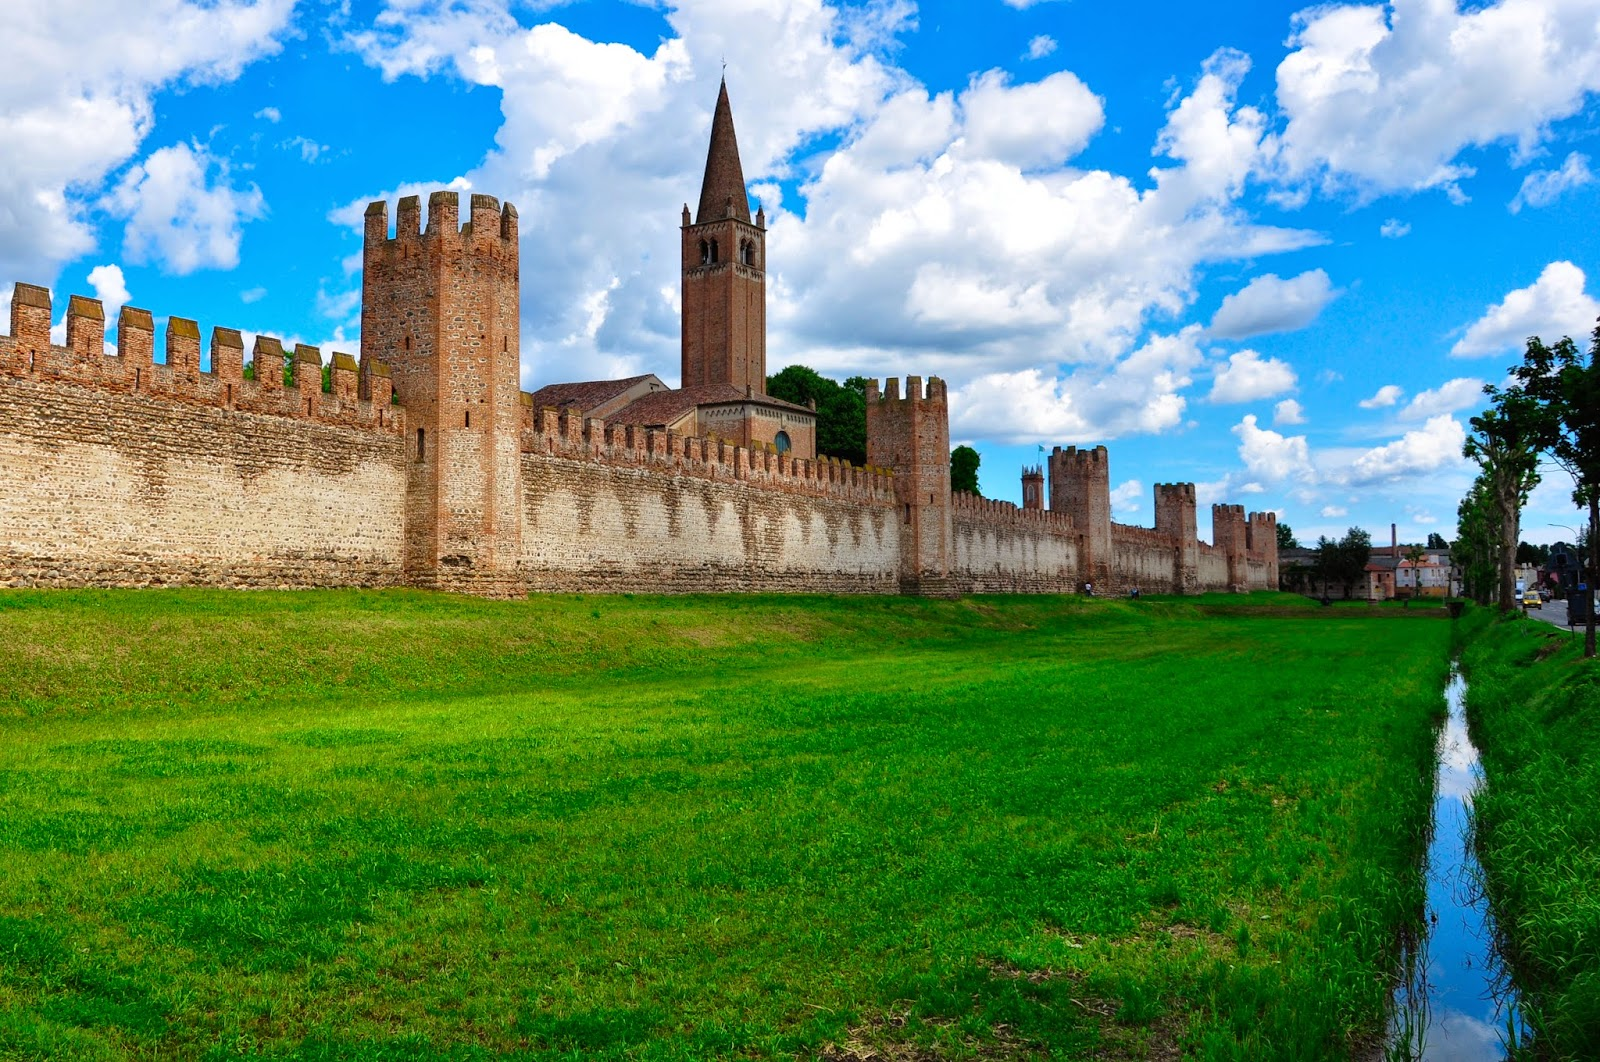 The medieval defensive wall of Montagnana, Veneto, Italy